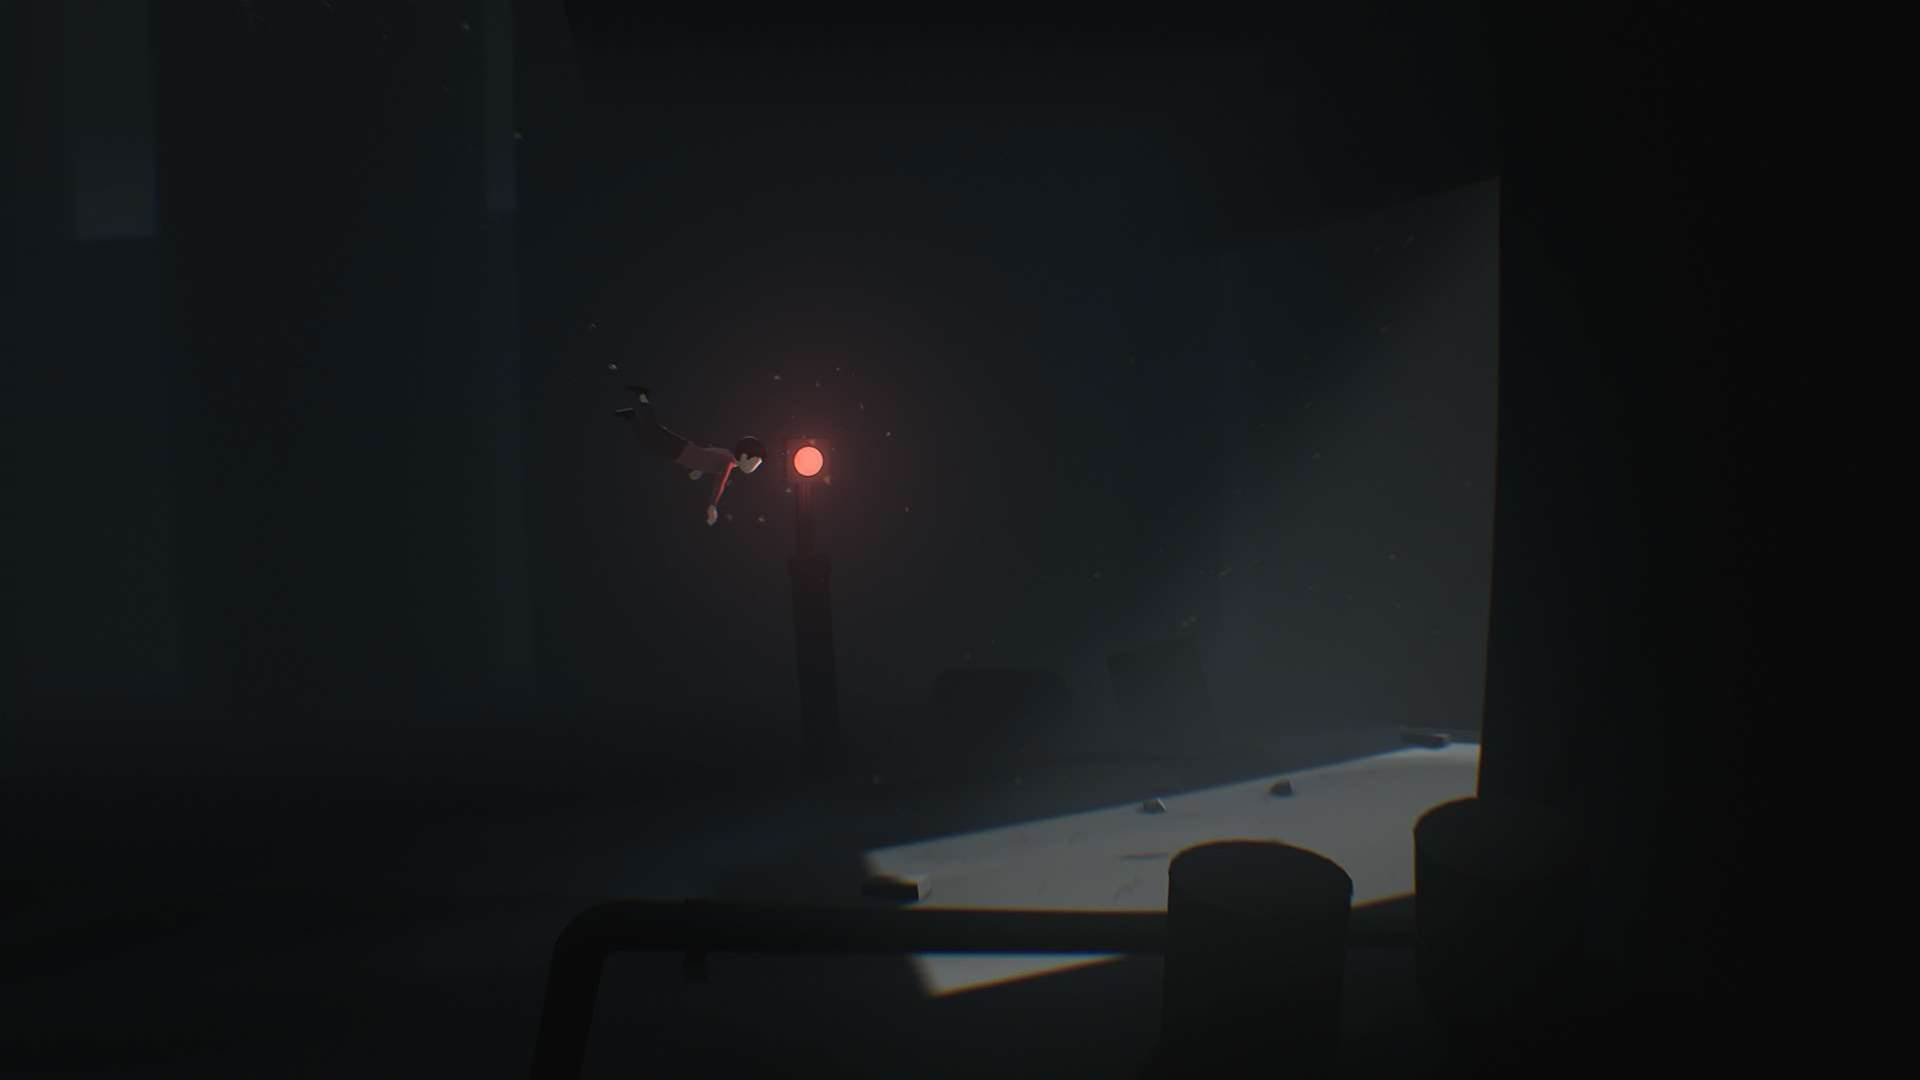 Moody screenshots from Playdead's Inside